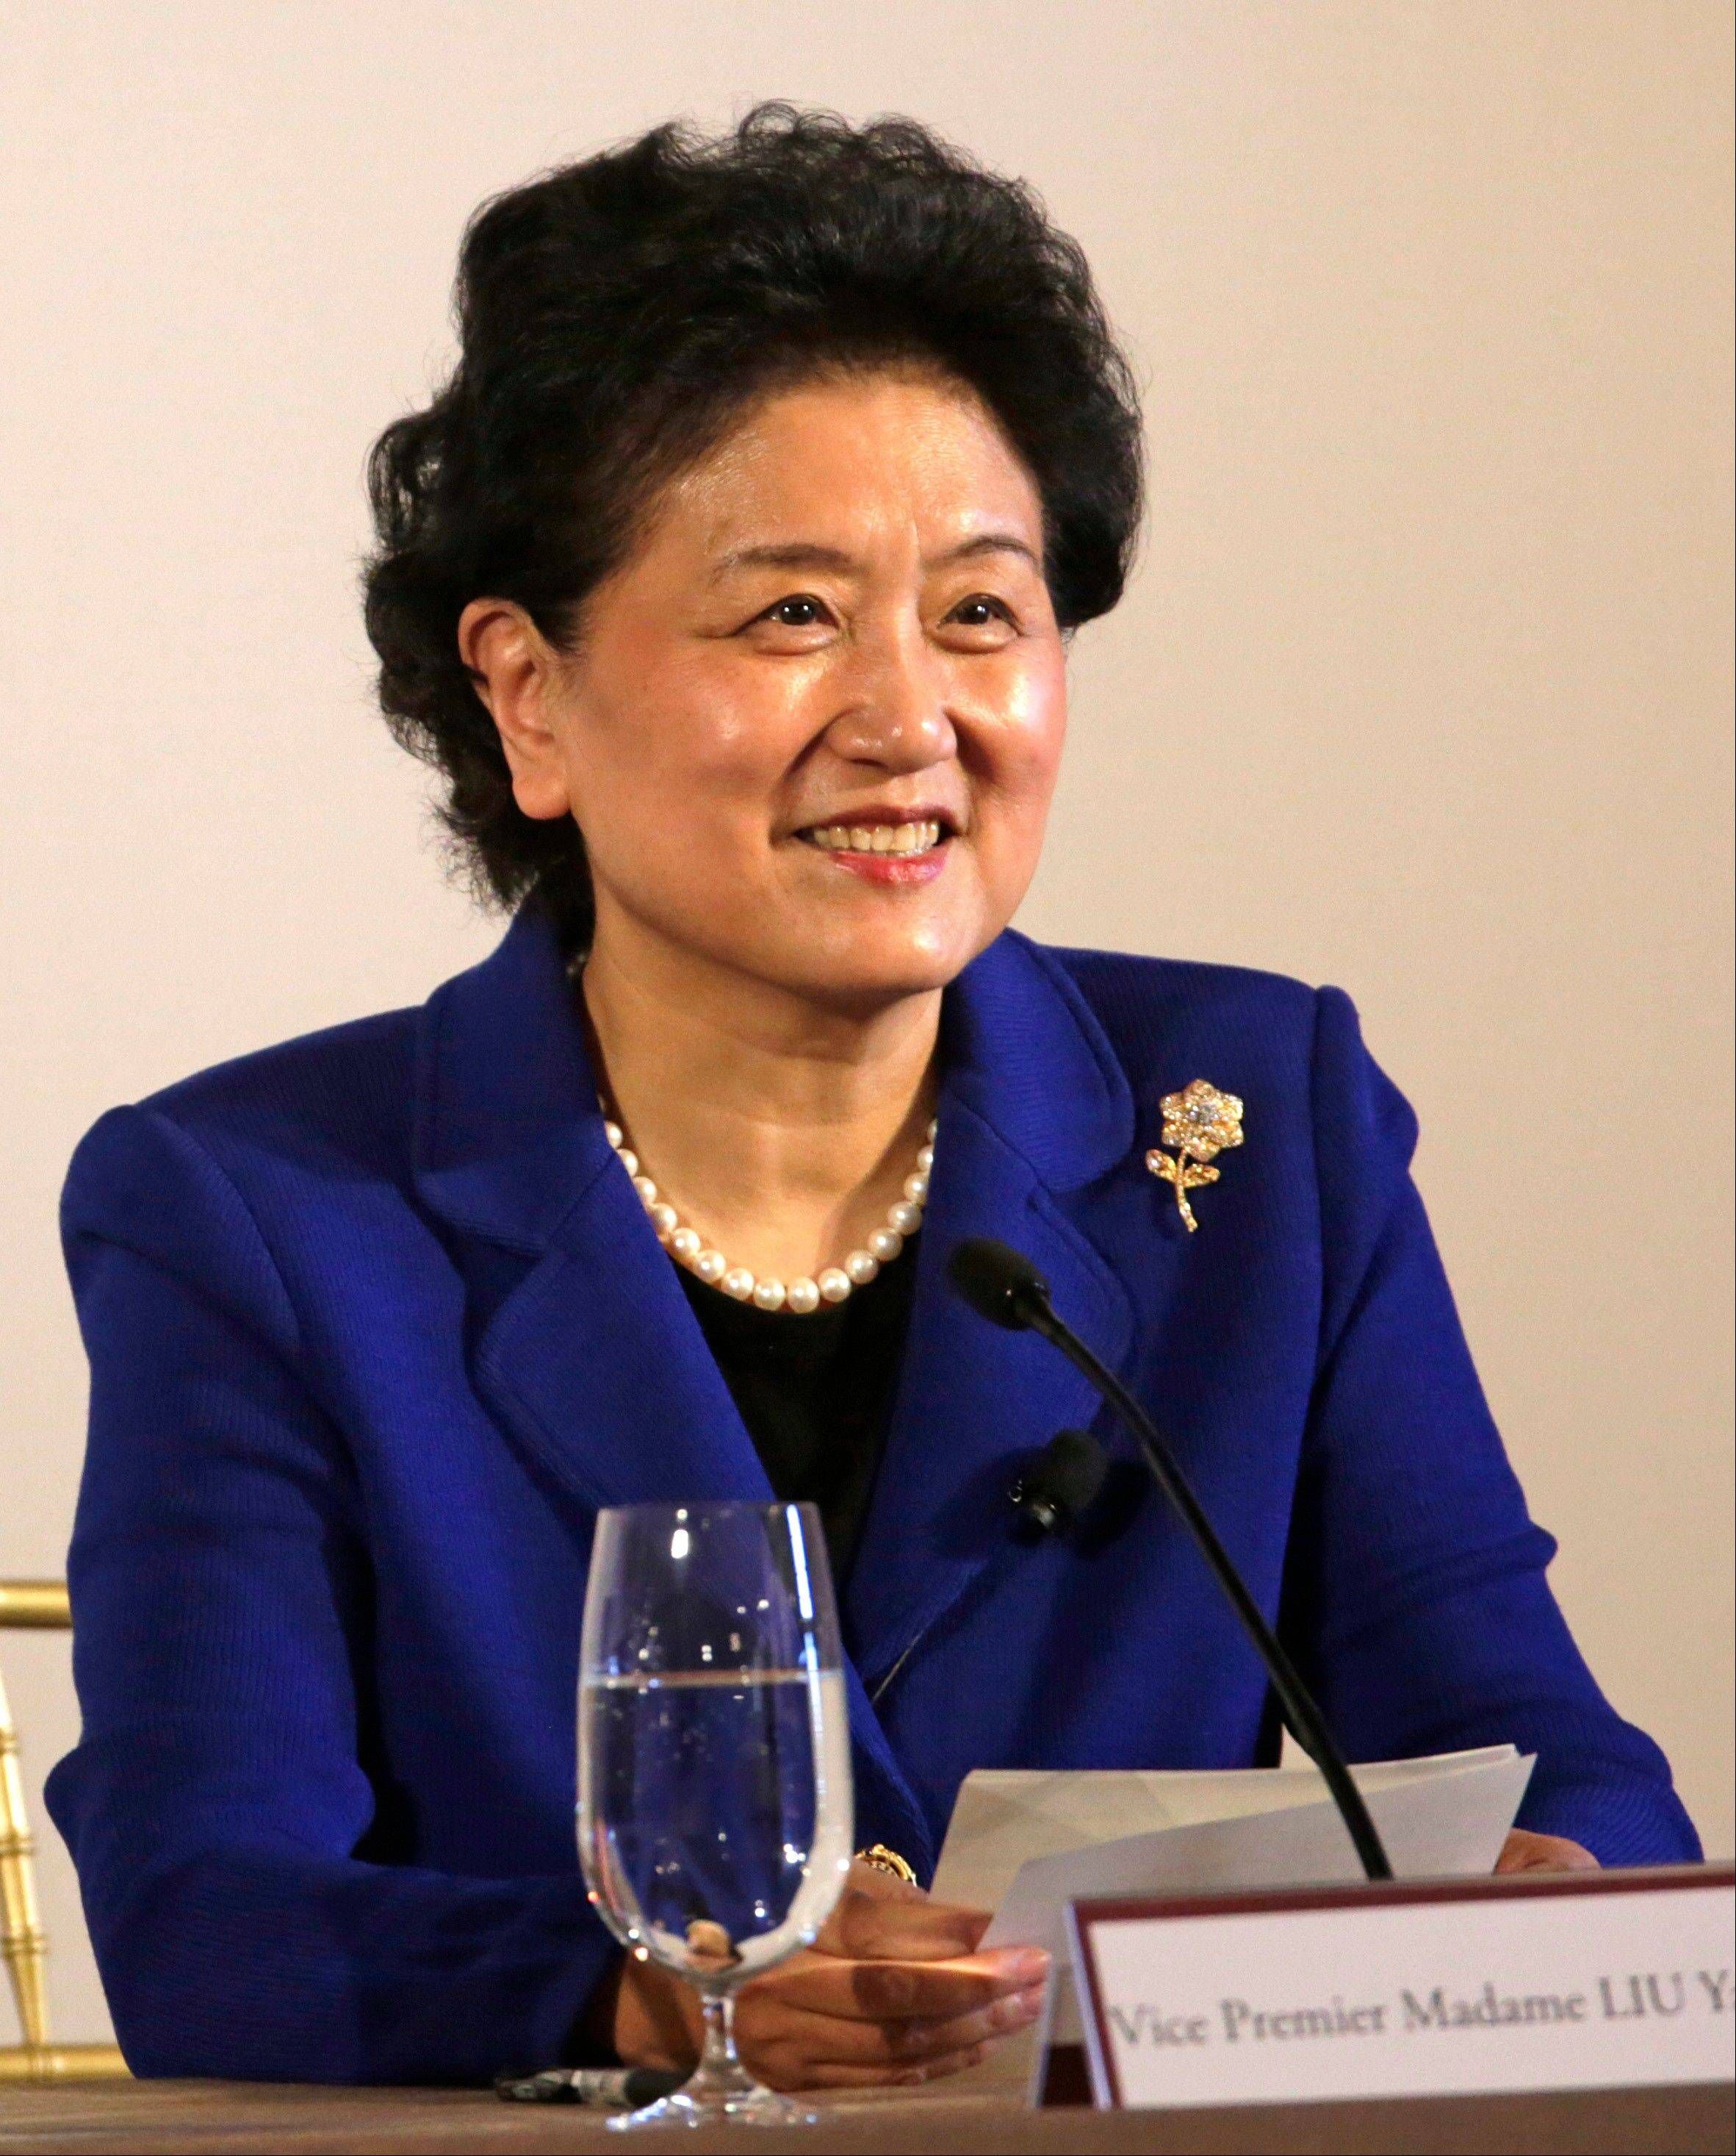 Vice Premier Liu Yandong of China says the exchange of students and teachers between the U.S. and China can lead to solutions for such global challenges as security, climate change and poverty.